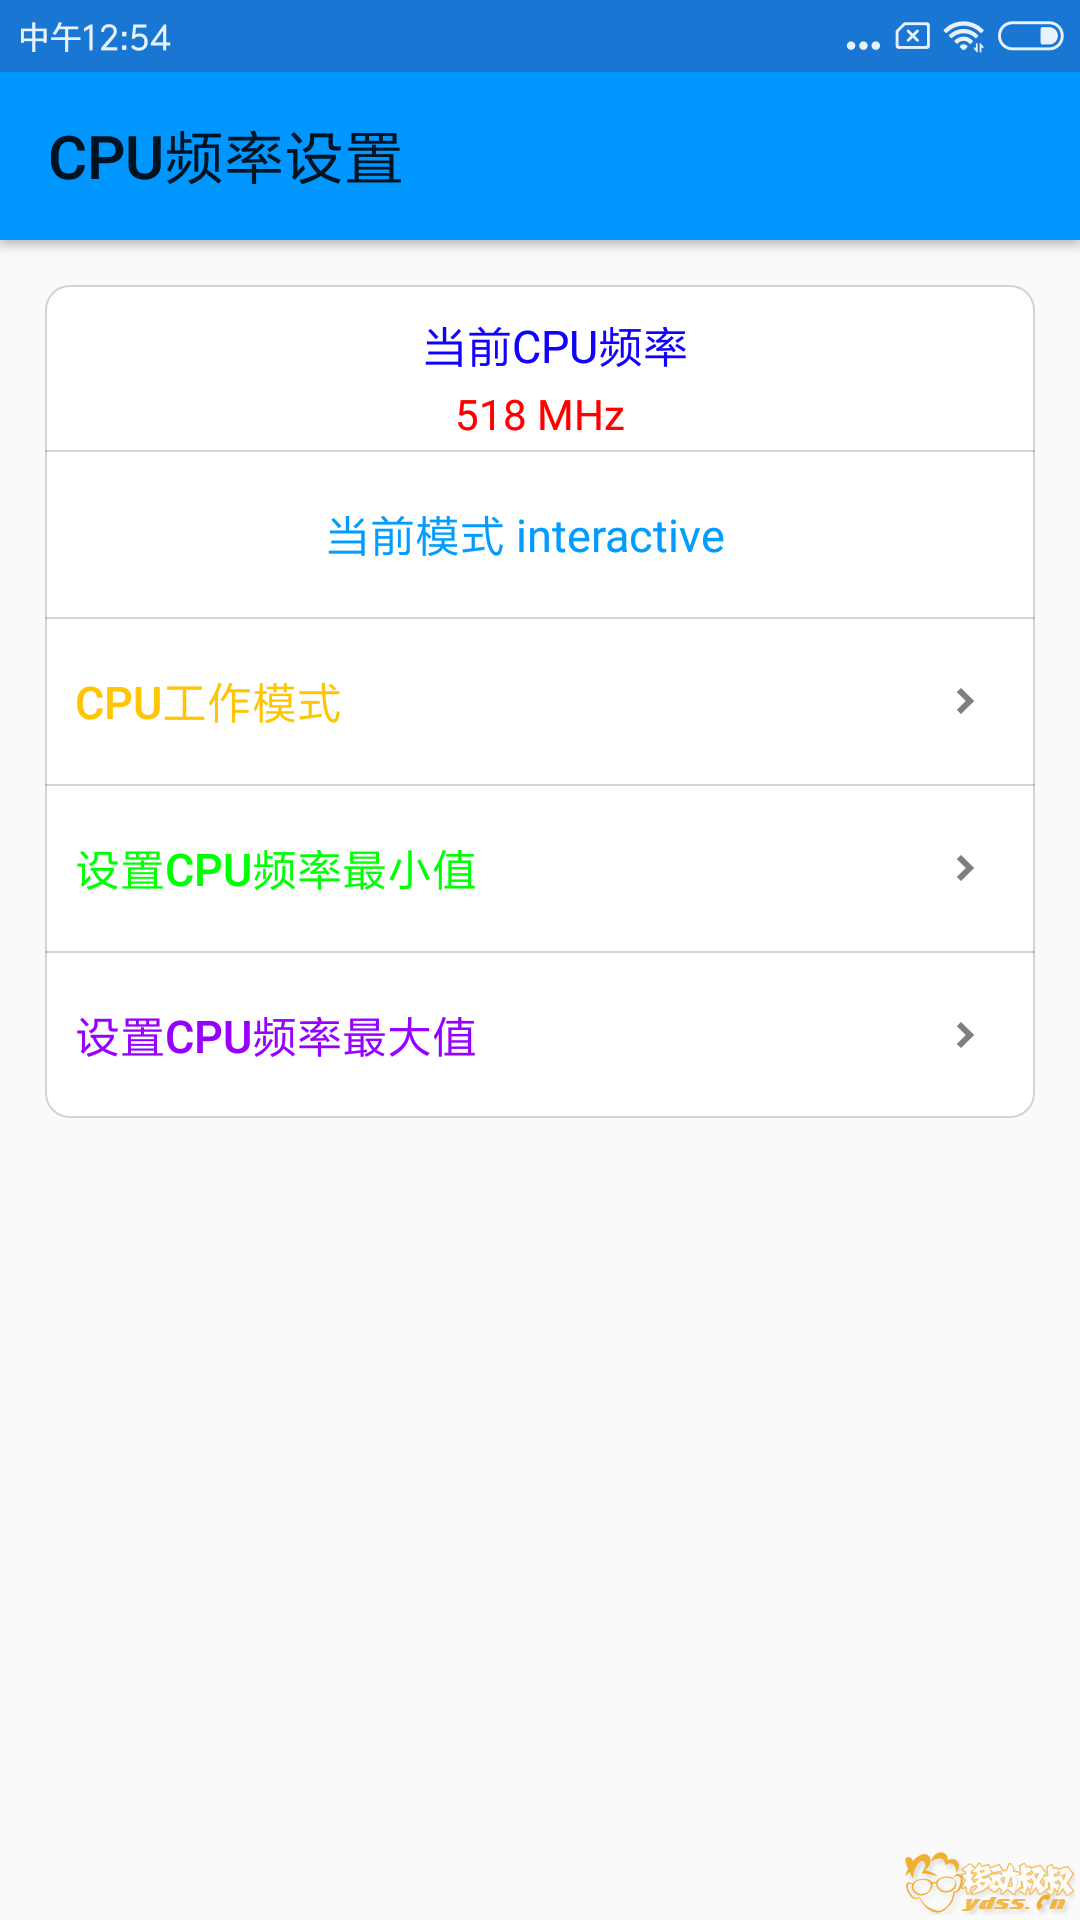 Screenshot_2018-10-04-12-54-08-234_com.zhanhong.tools.png